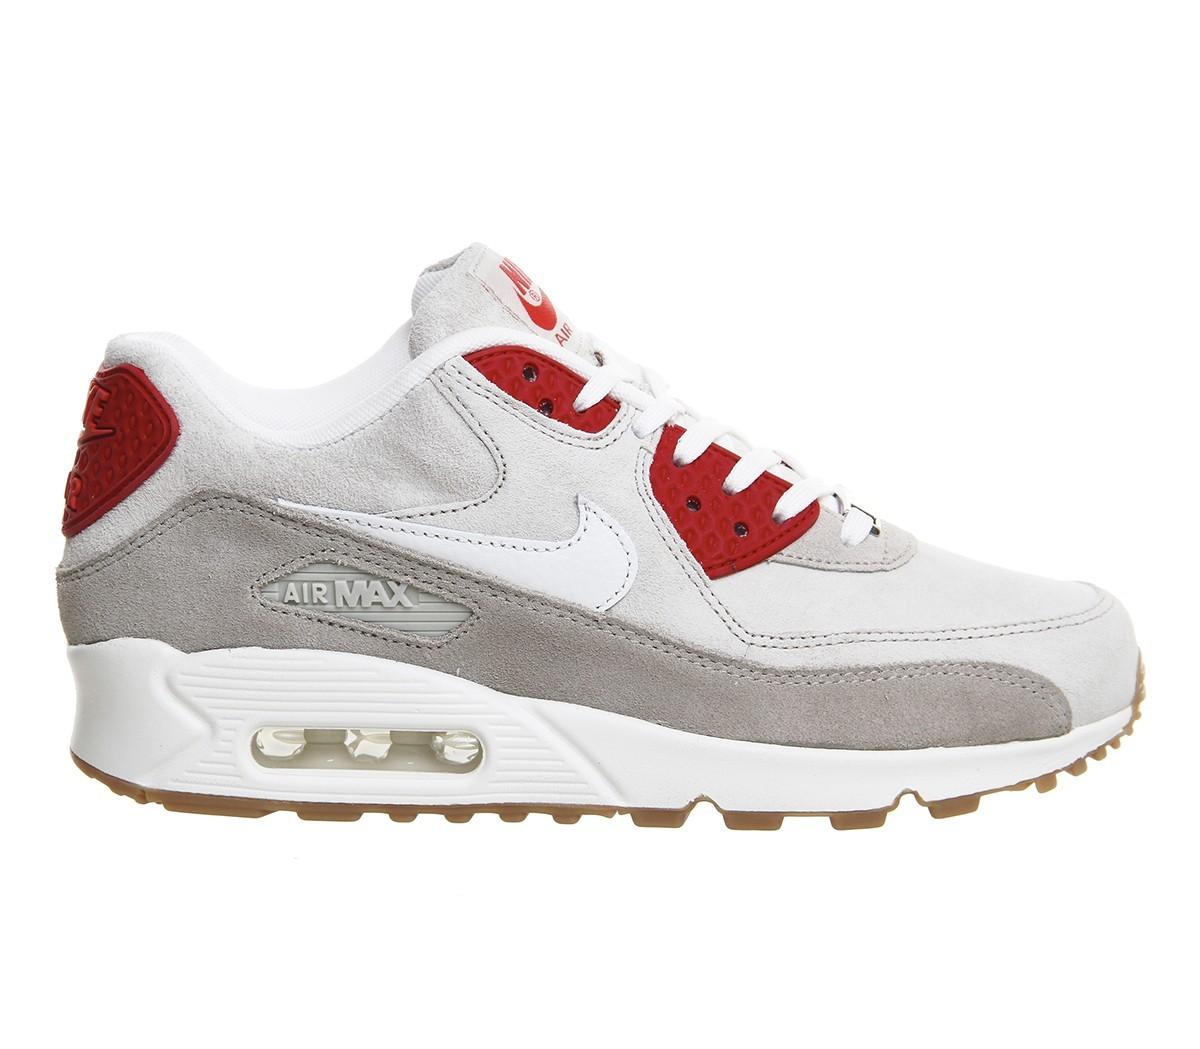 Nike Air Max 90 Femme New York Cheesecake Qs Couleur claire  - Nike Air Max 90 Femme New York Cheesecake Qs Couleur claire-01-1